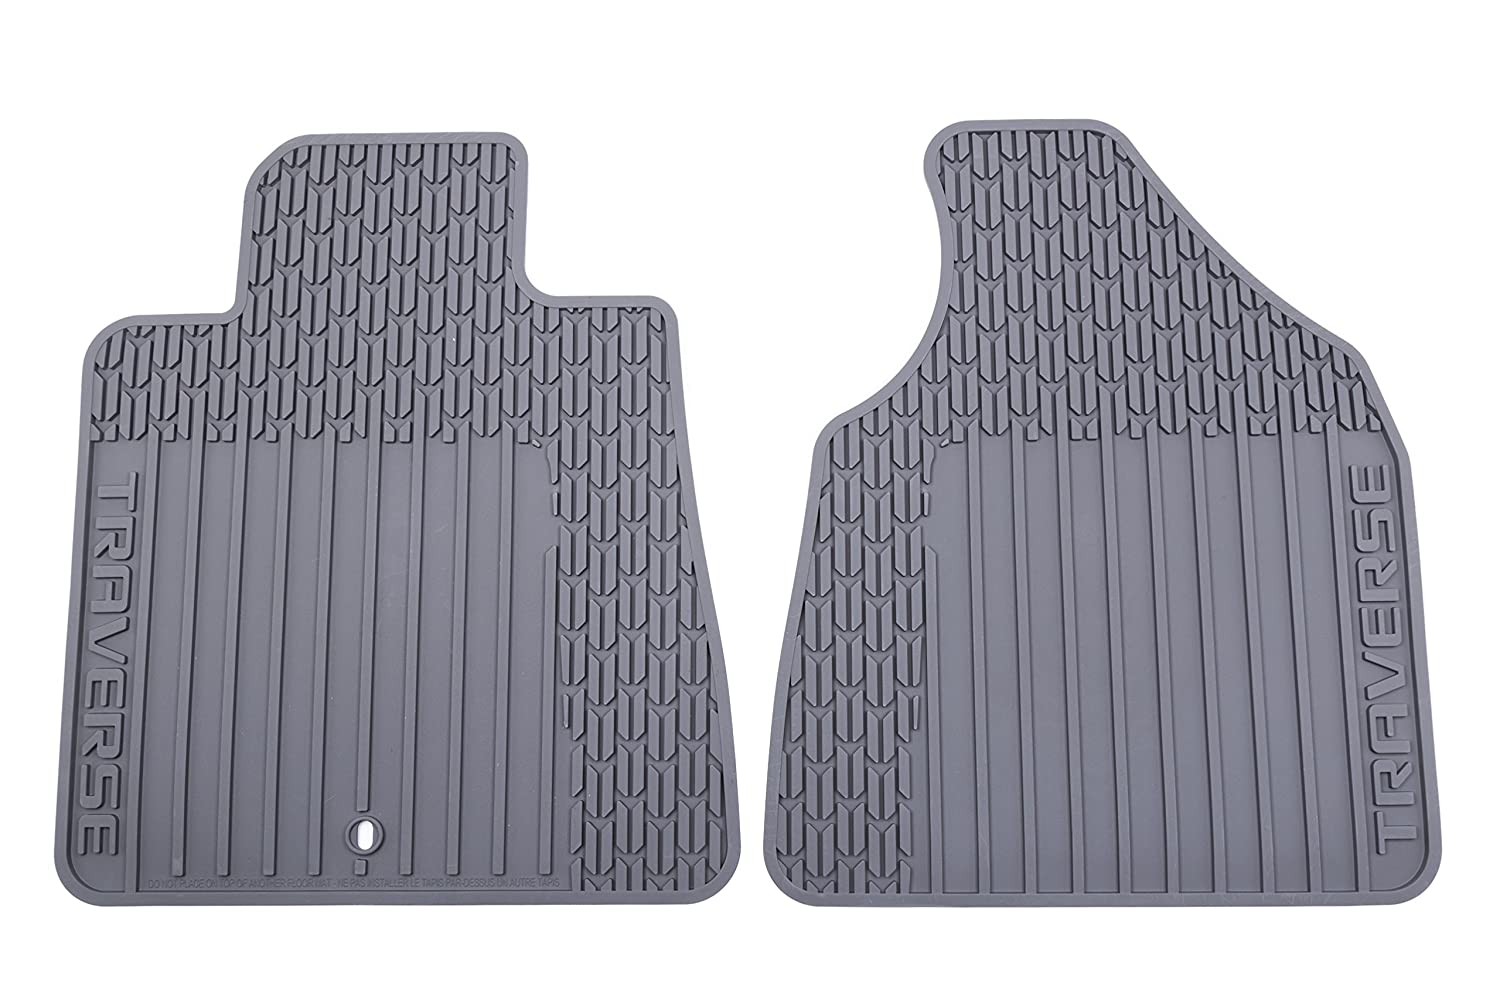 Amazon.com: GM Accessories 22890016 Front All-Weather Floor Mats in Ebony with Traverse Logo: Automotive